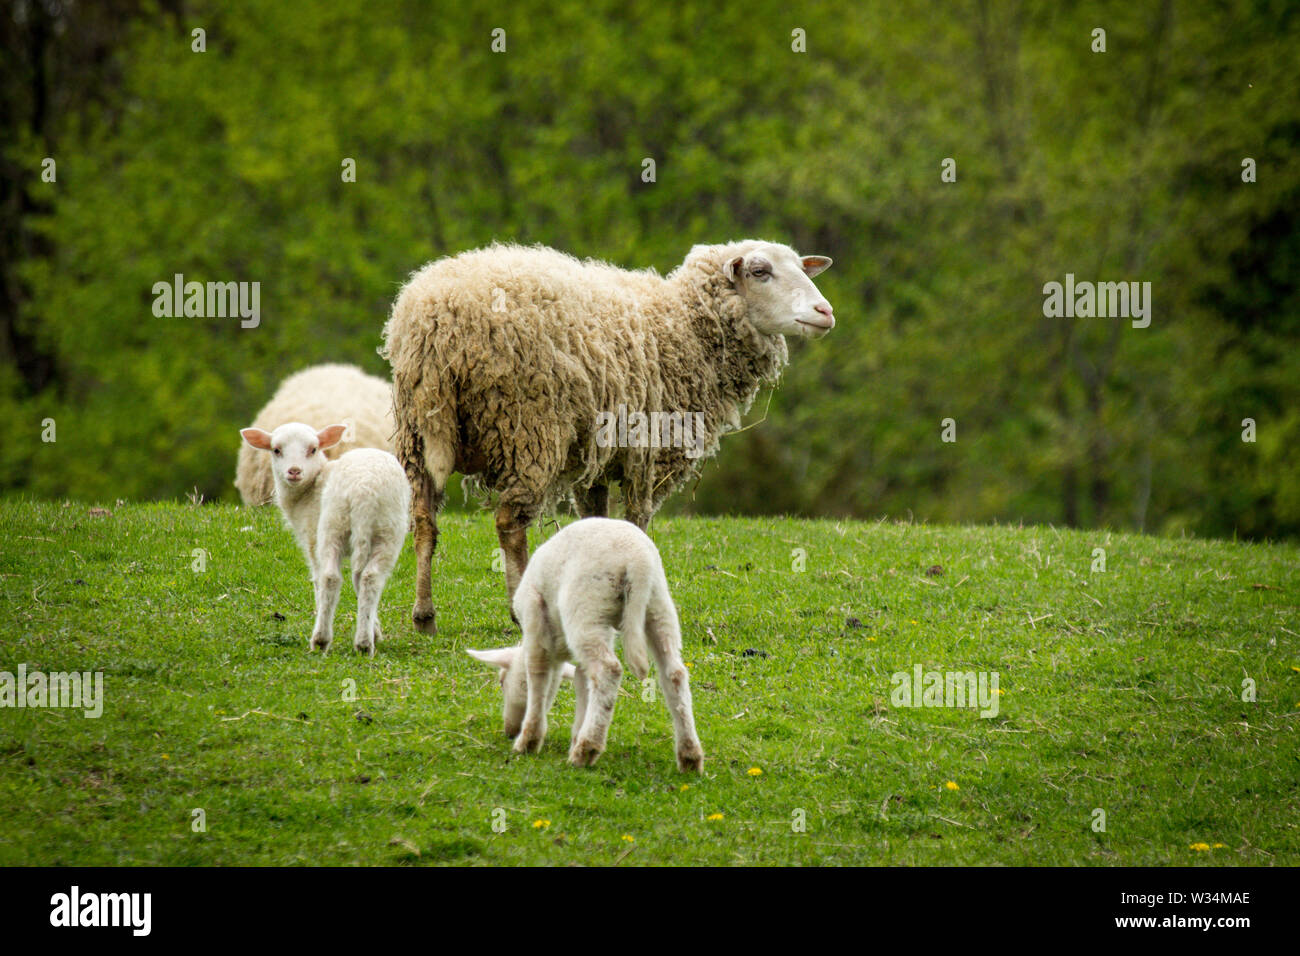 Mother sheep with two babies on farm hillside during early spring day - Stock Image